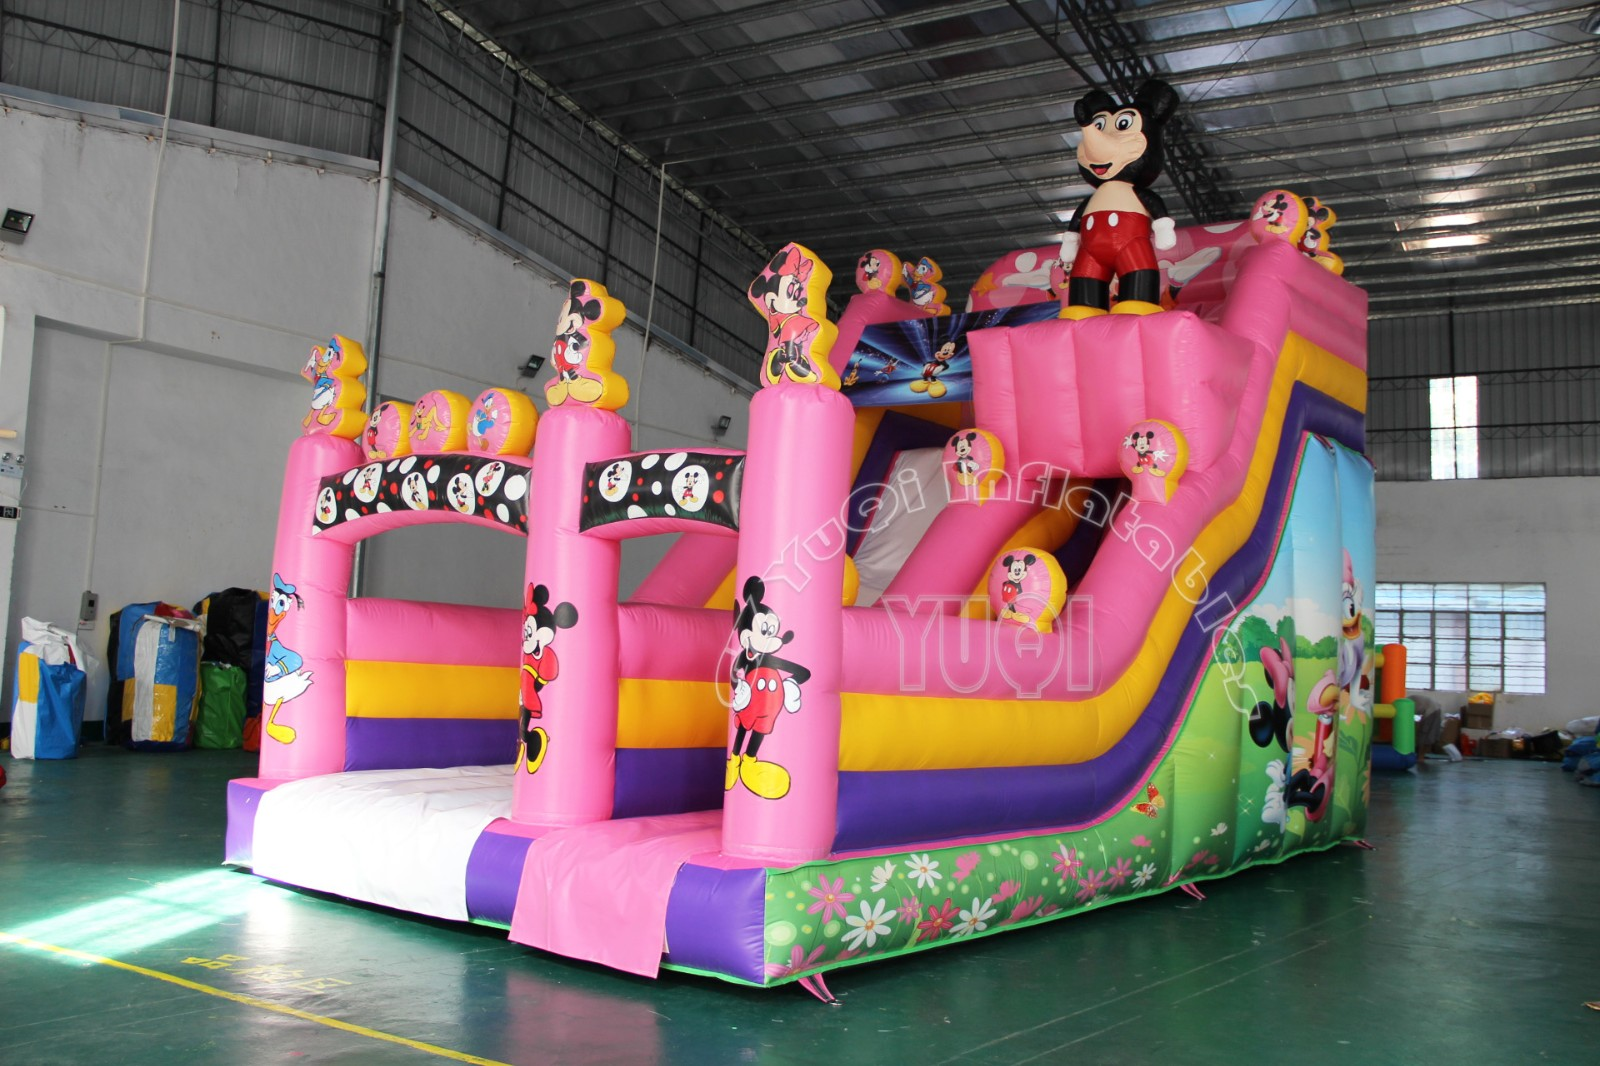 YUQI-Yq23 Hot Sale Mickeyy Mouse Giant Inflatable Water Slide